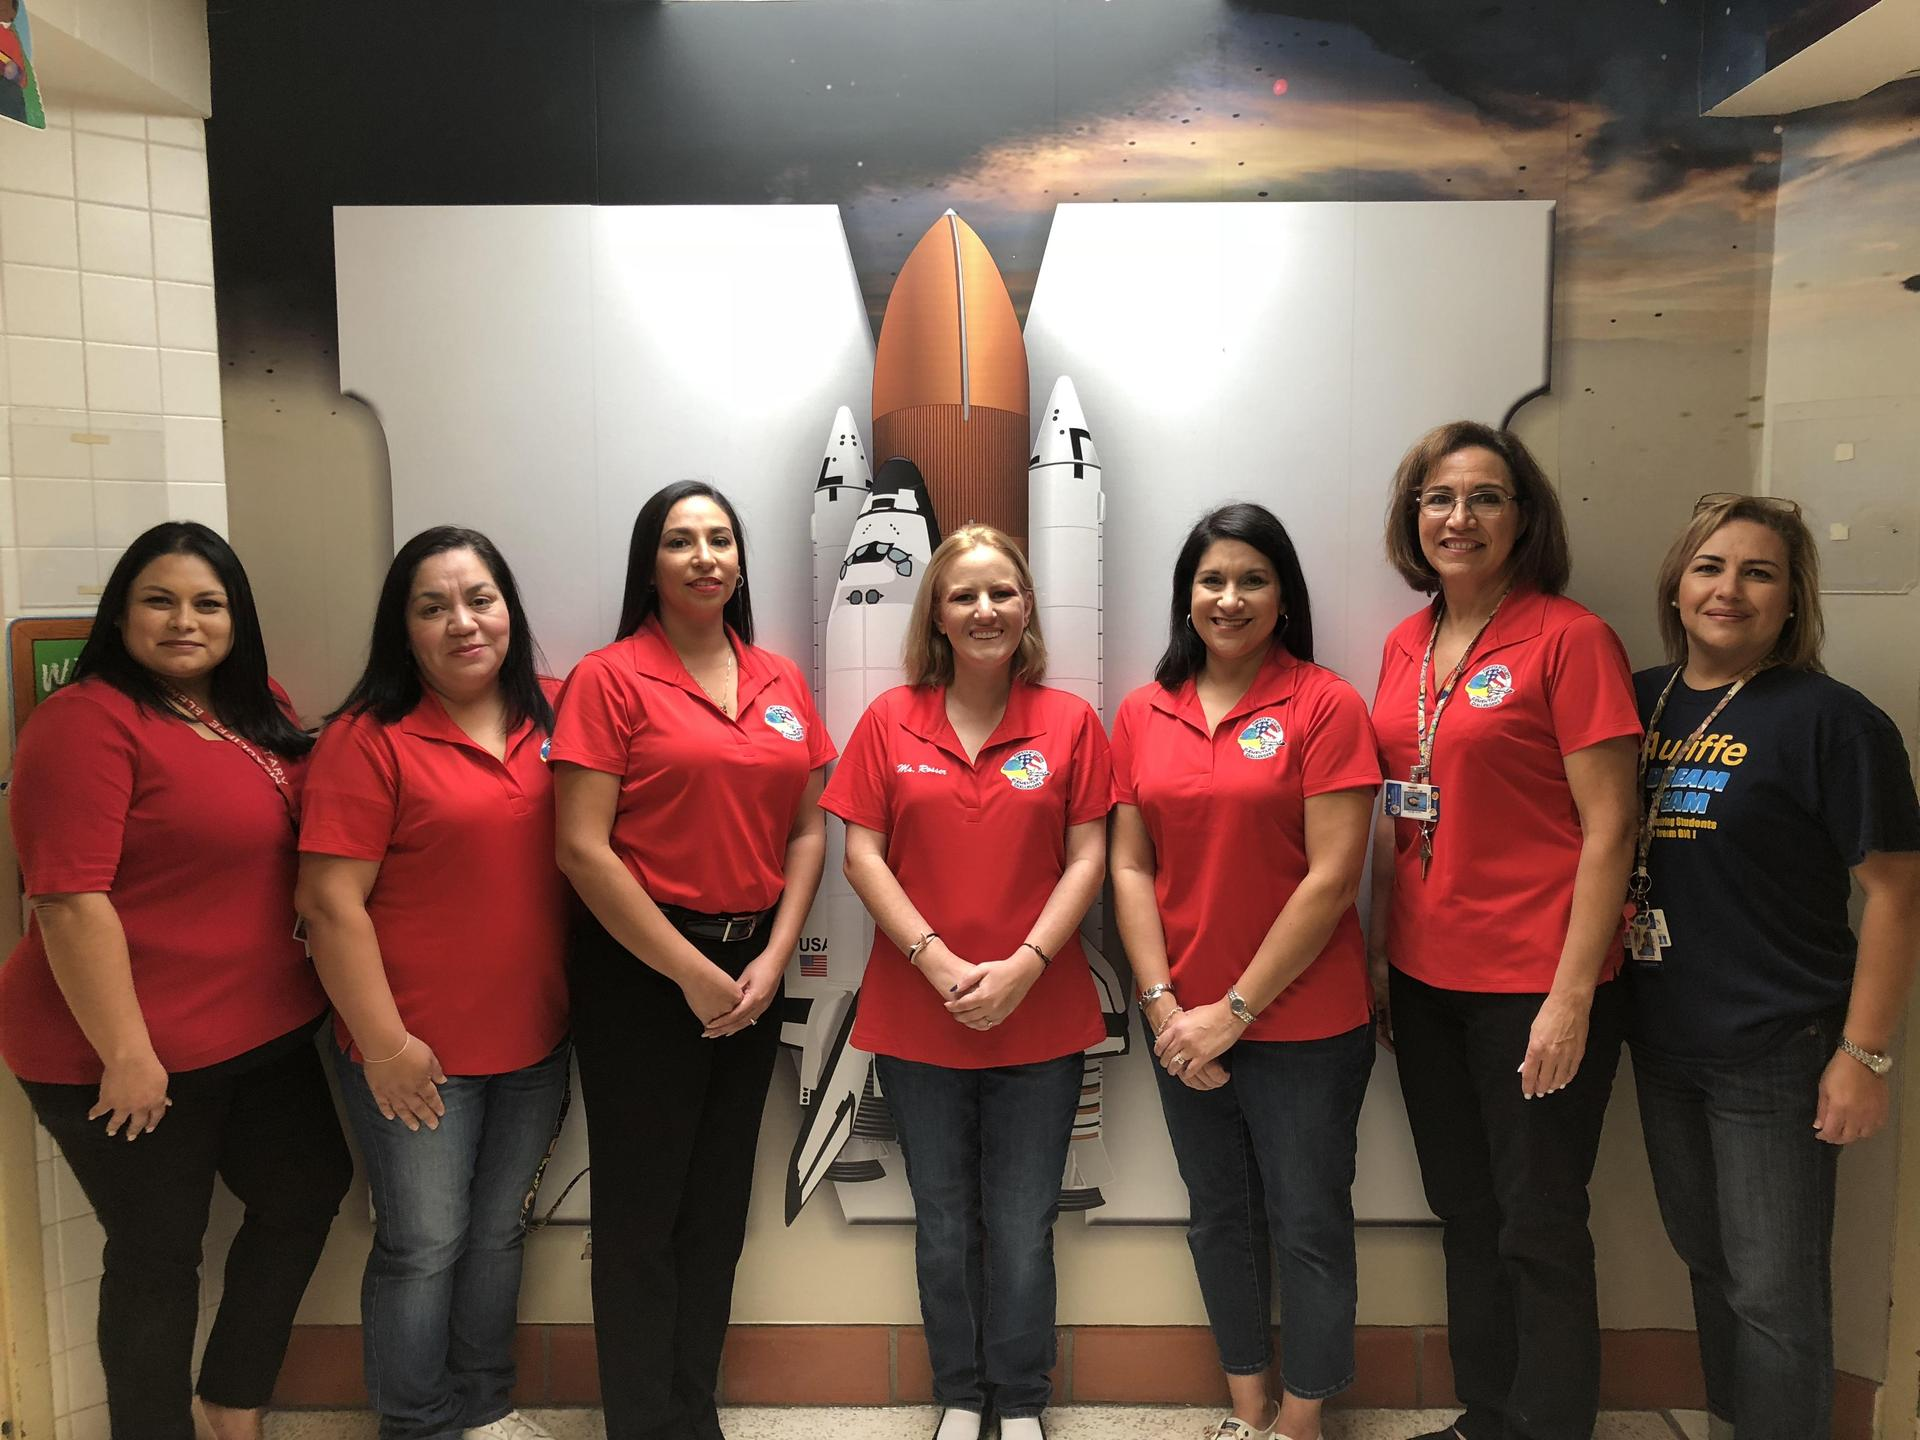 Student Support Staff posing in front of challenger.